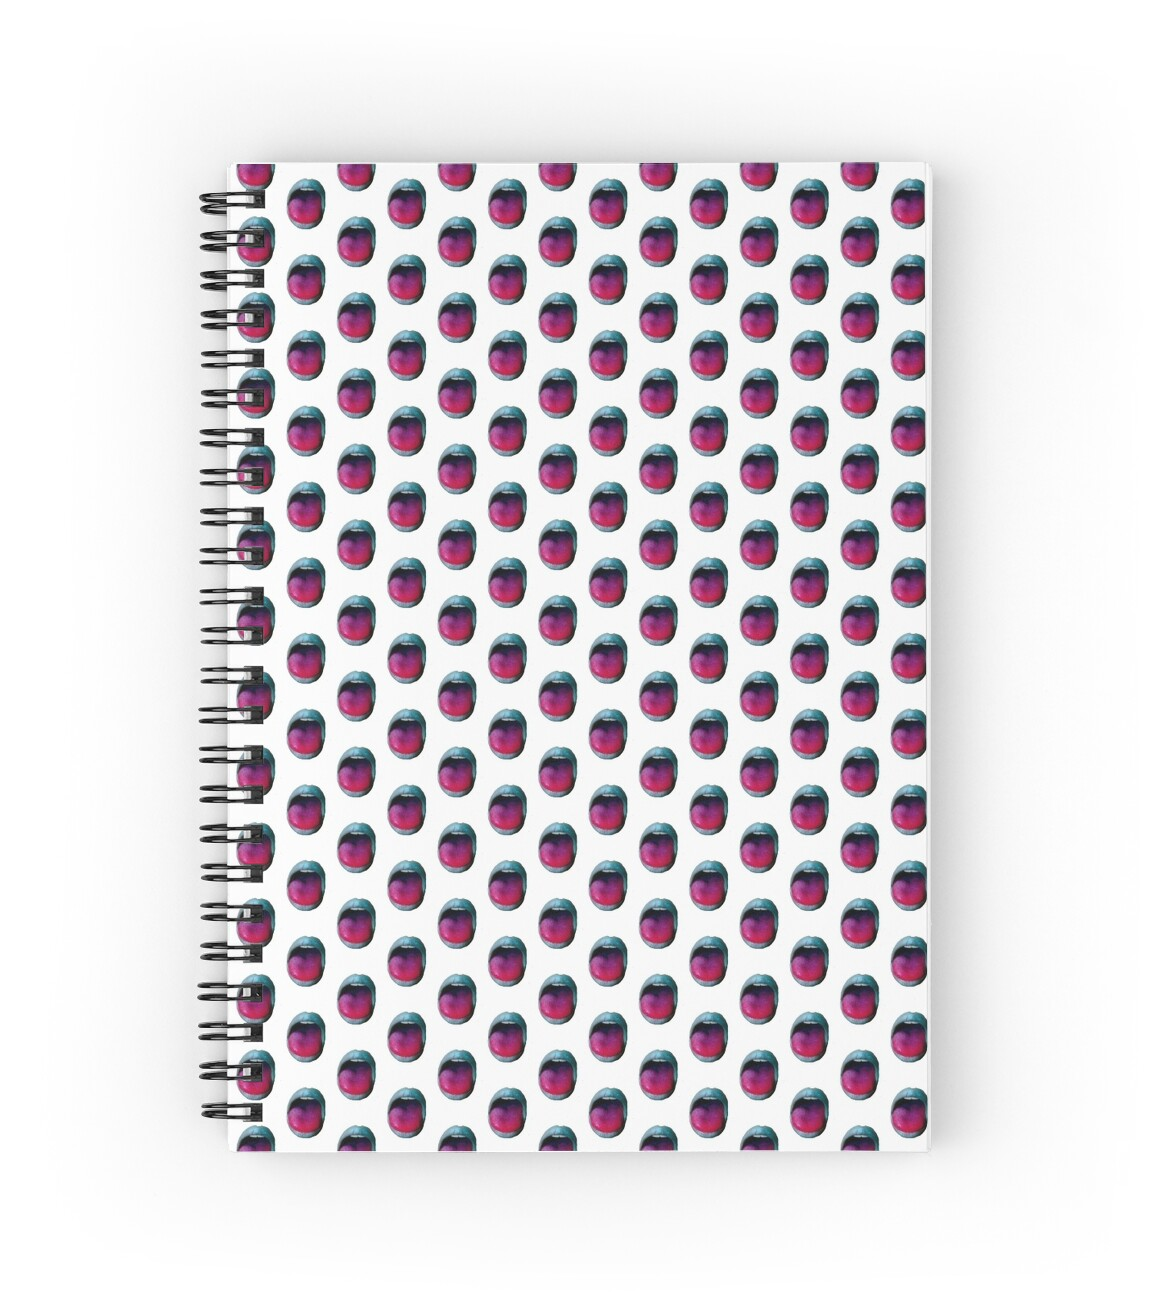 Tumblr Sticker Pastel Quottumblr Pastel Goth Kawaii Cute Grunge Quot Spiral Notebooks